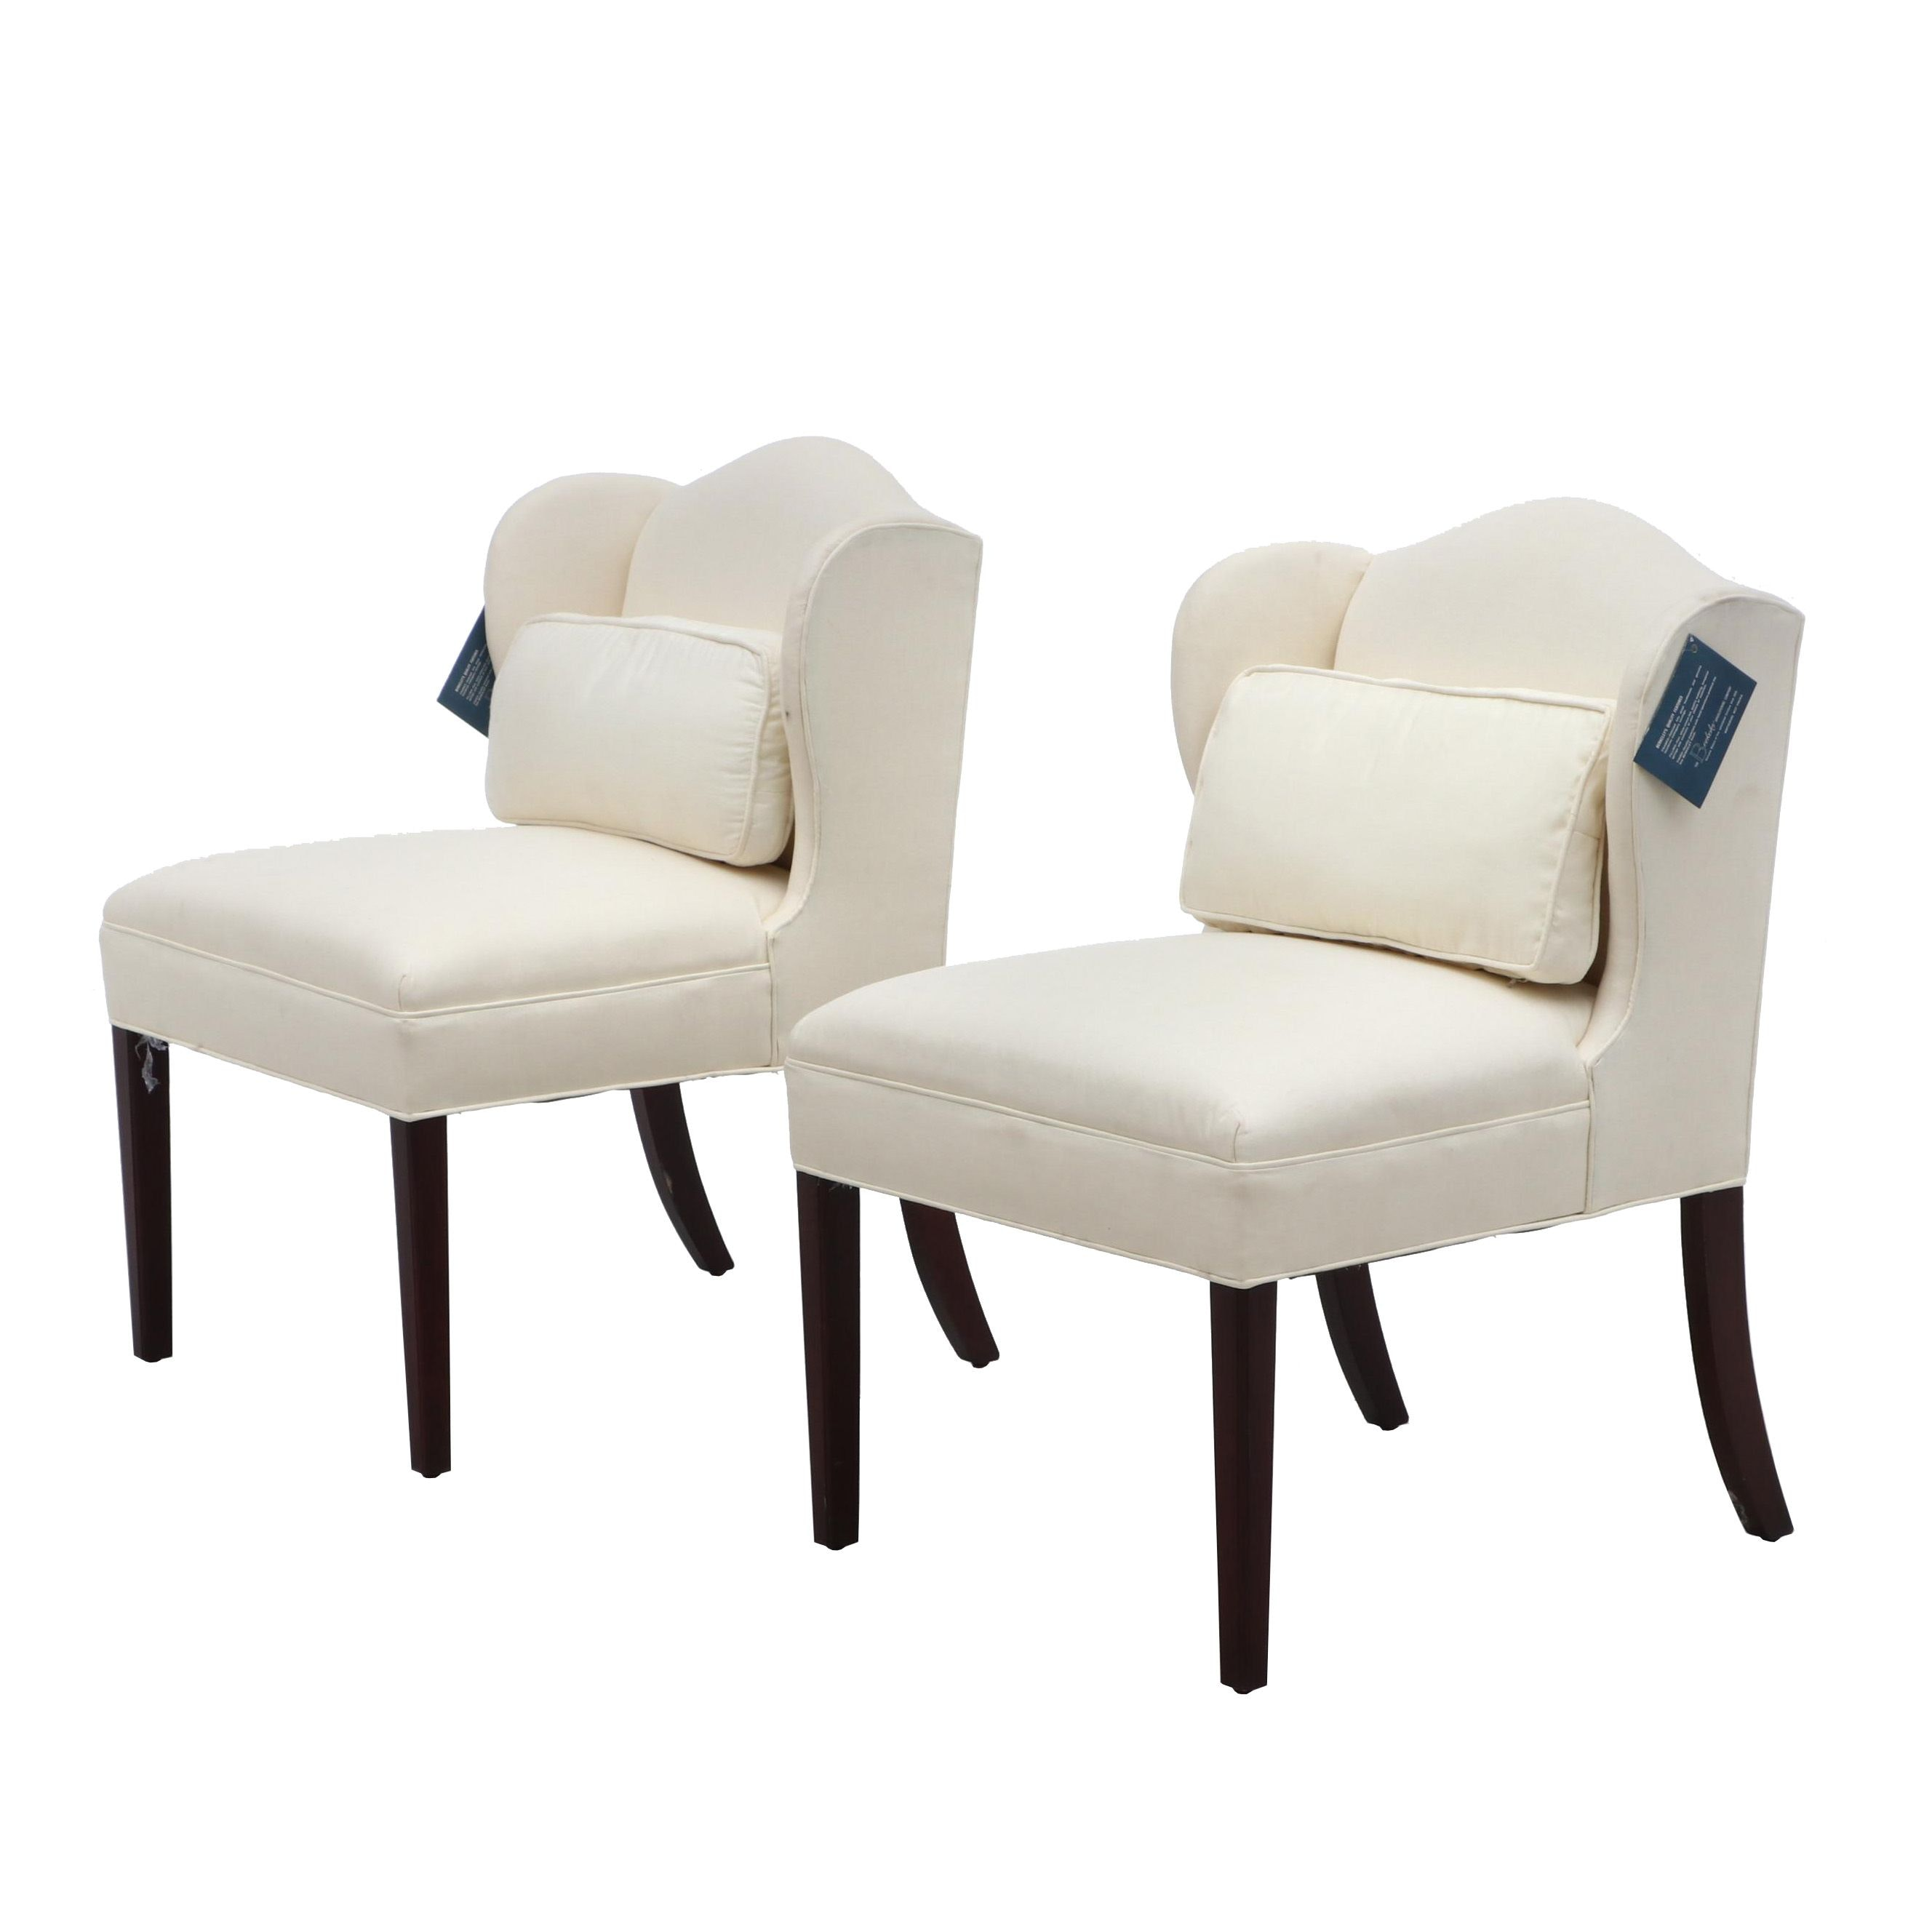 Berkeley Upholstered Chairs